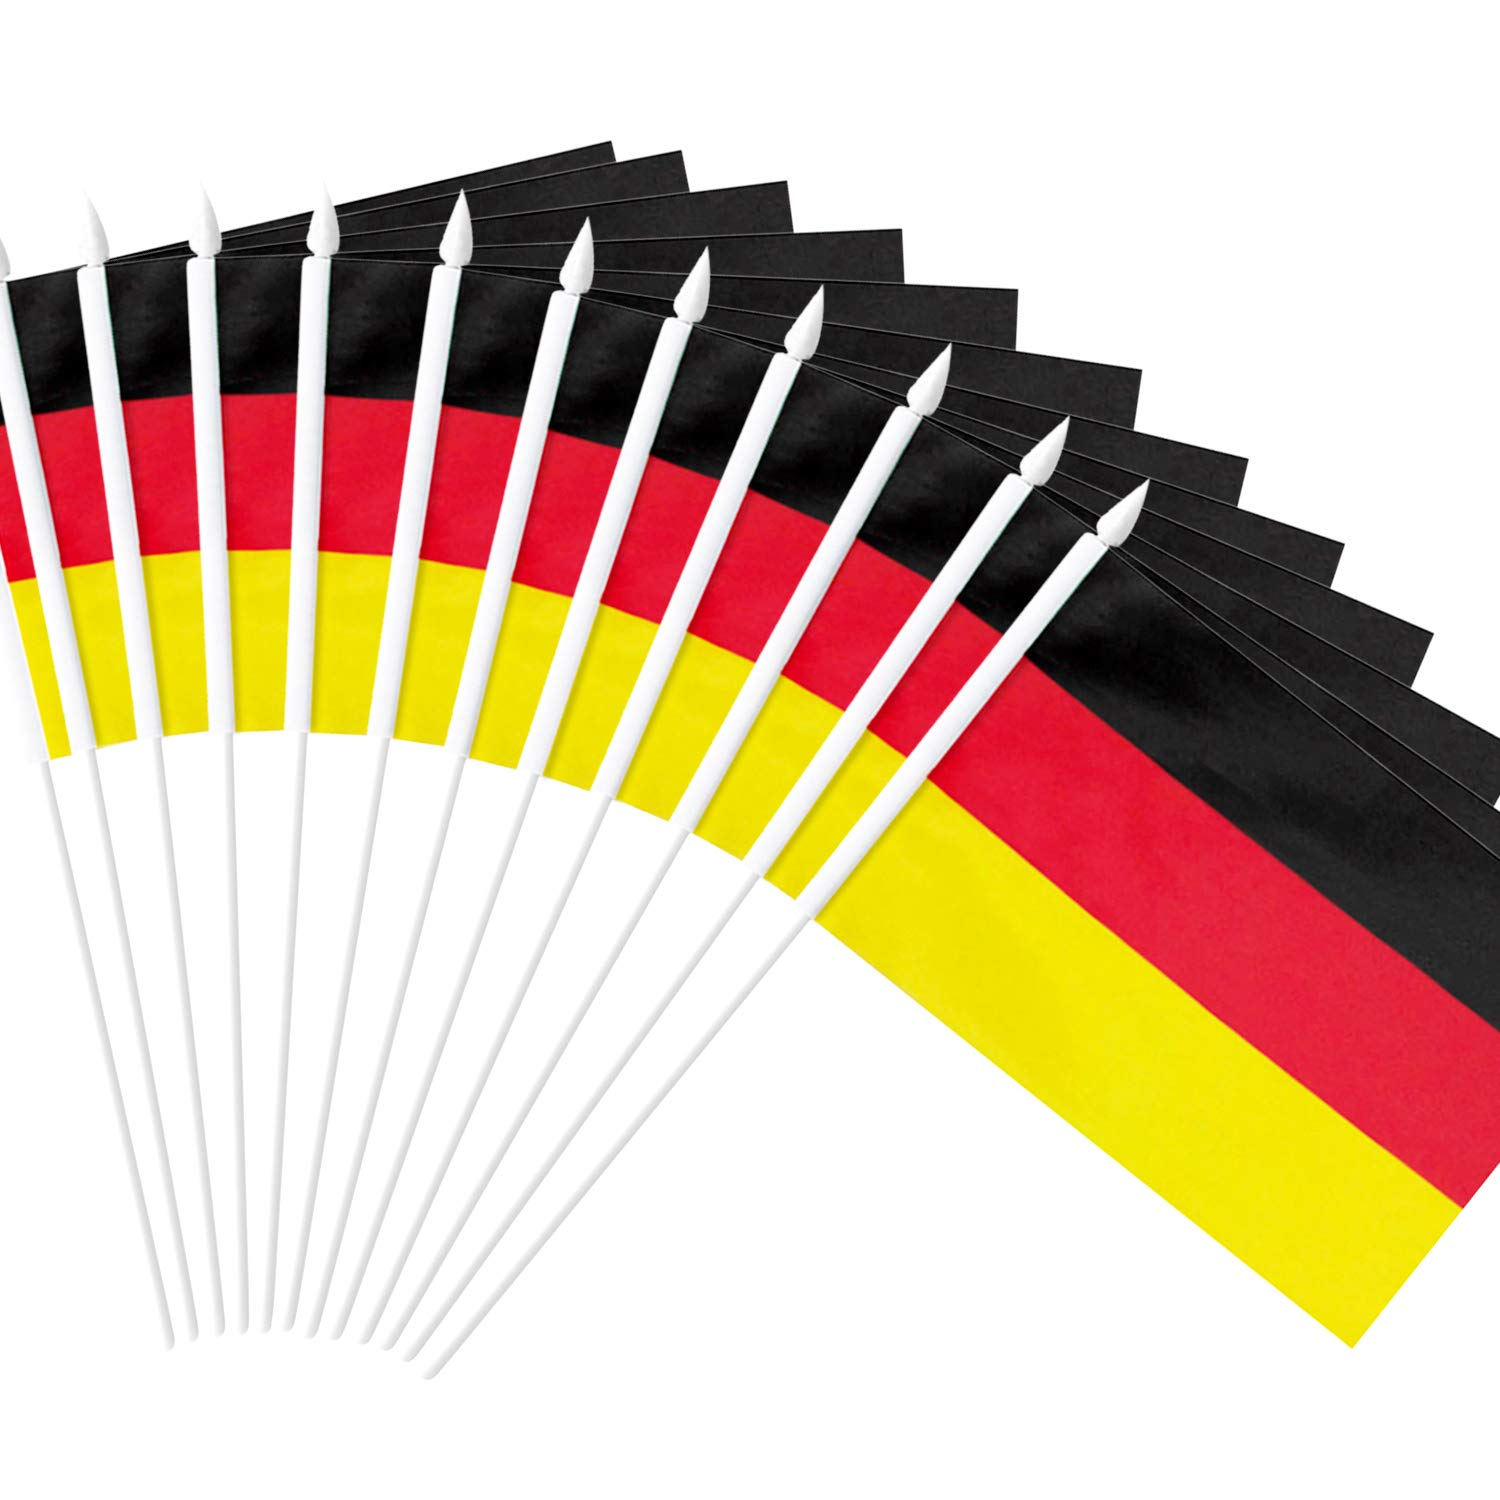 """Anley Germany Stick Flag, German 5x8 inch Handheld Mini Flag with 12"""" White Solid Pole - Vivid Color and Fade Resistant - 5 x 8 inch Hand Held Stick Flags with Spear Top (1 Dozen)"""